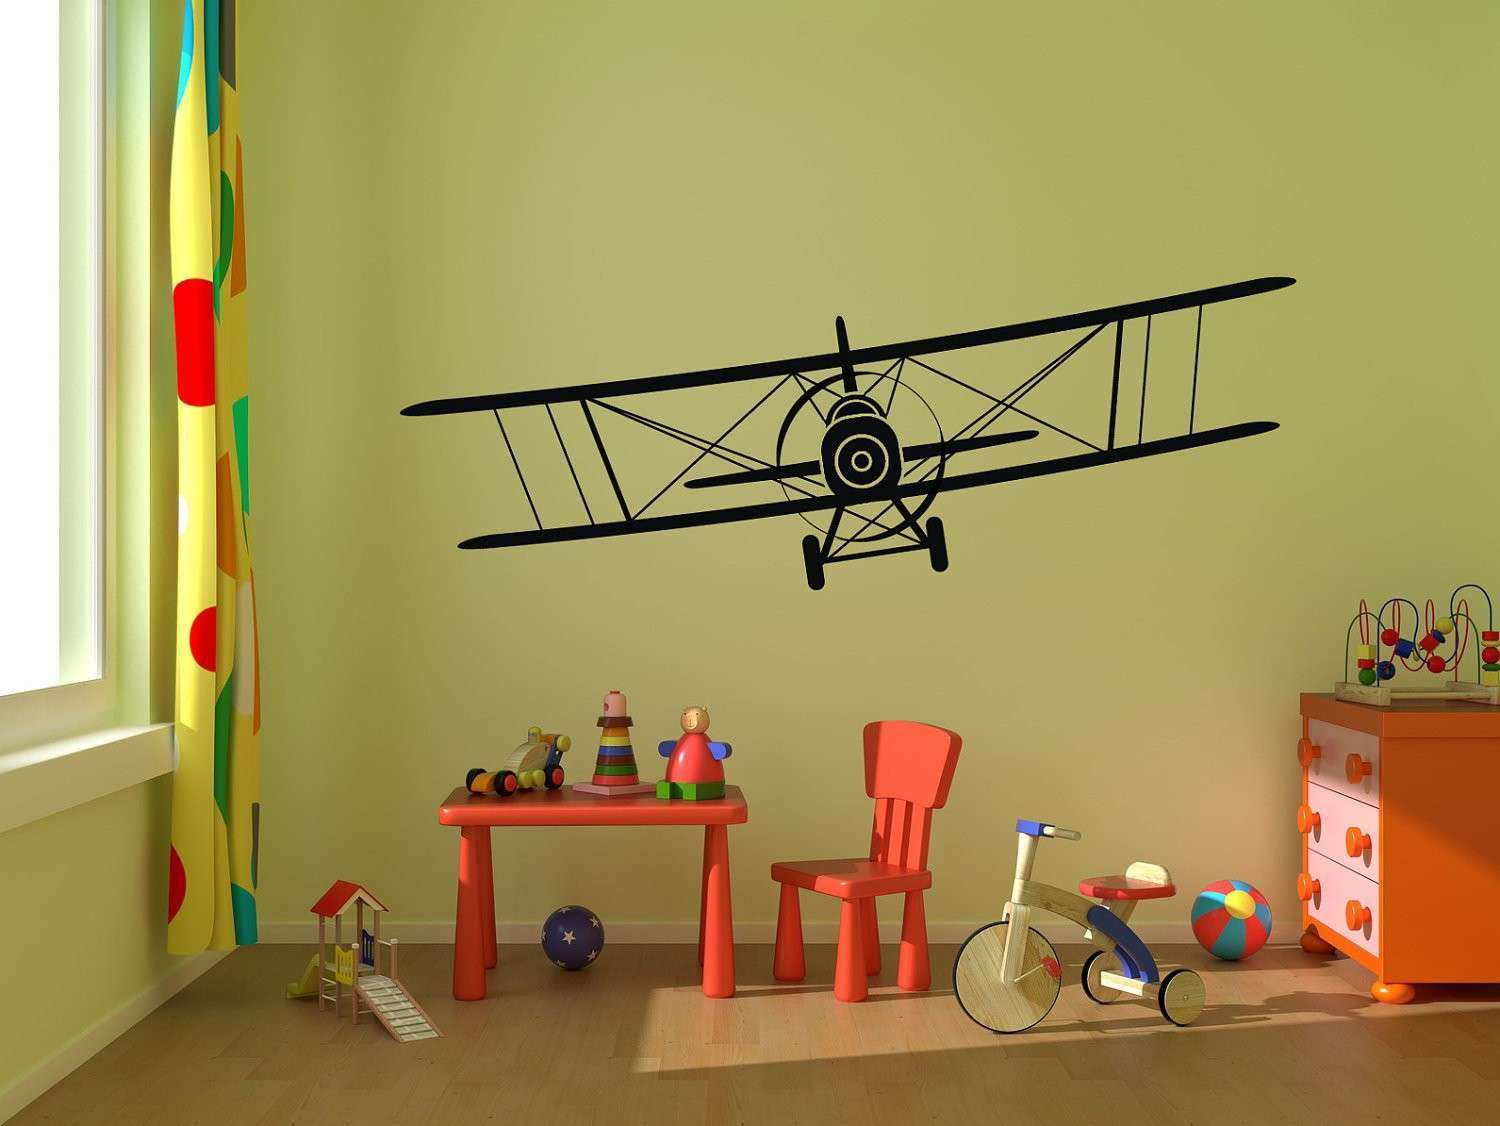 Airplane Wall Decal Biplane Vinyl Wall Graphics by StickerHog